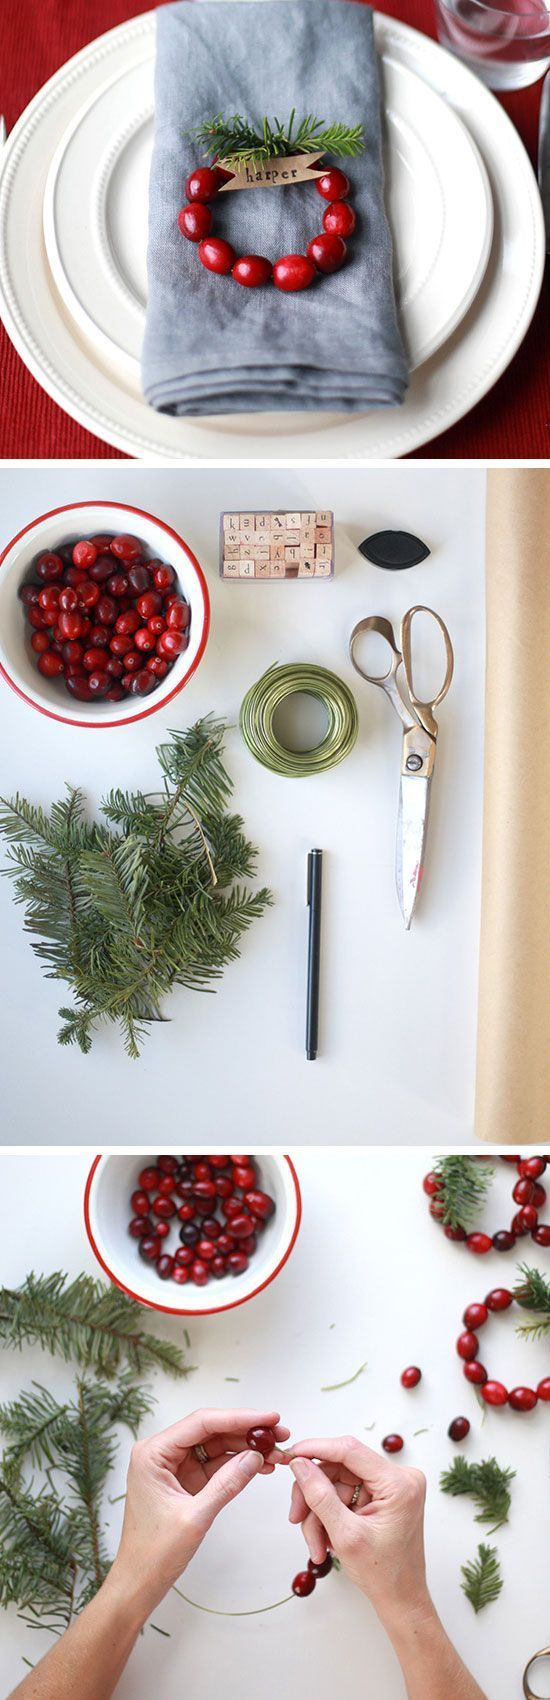 30 DIY Christmas Table Decoration Ideas